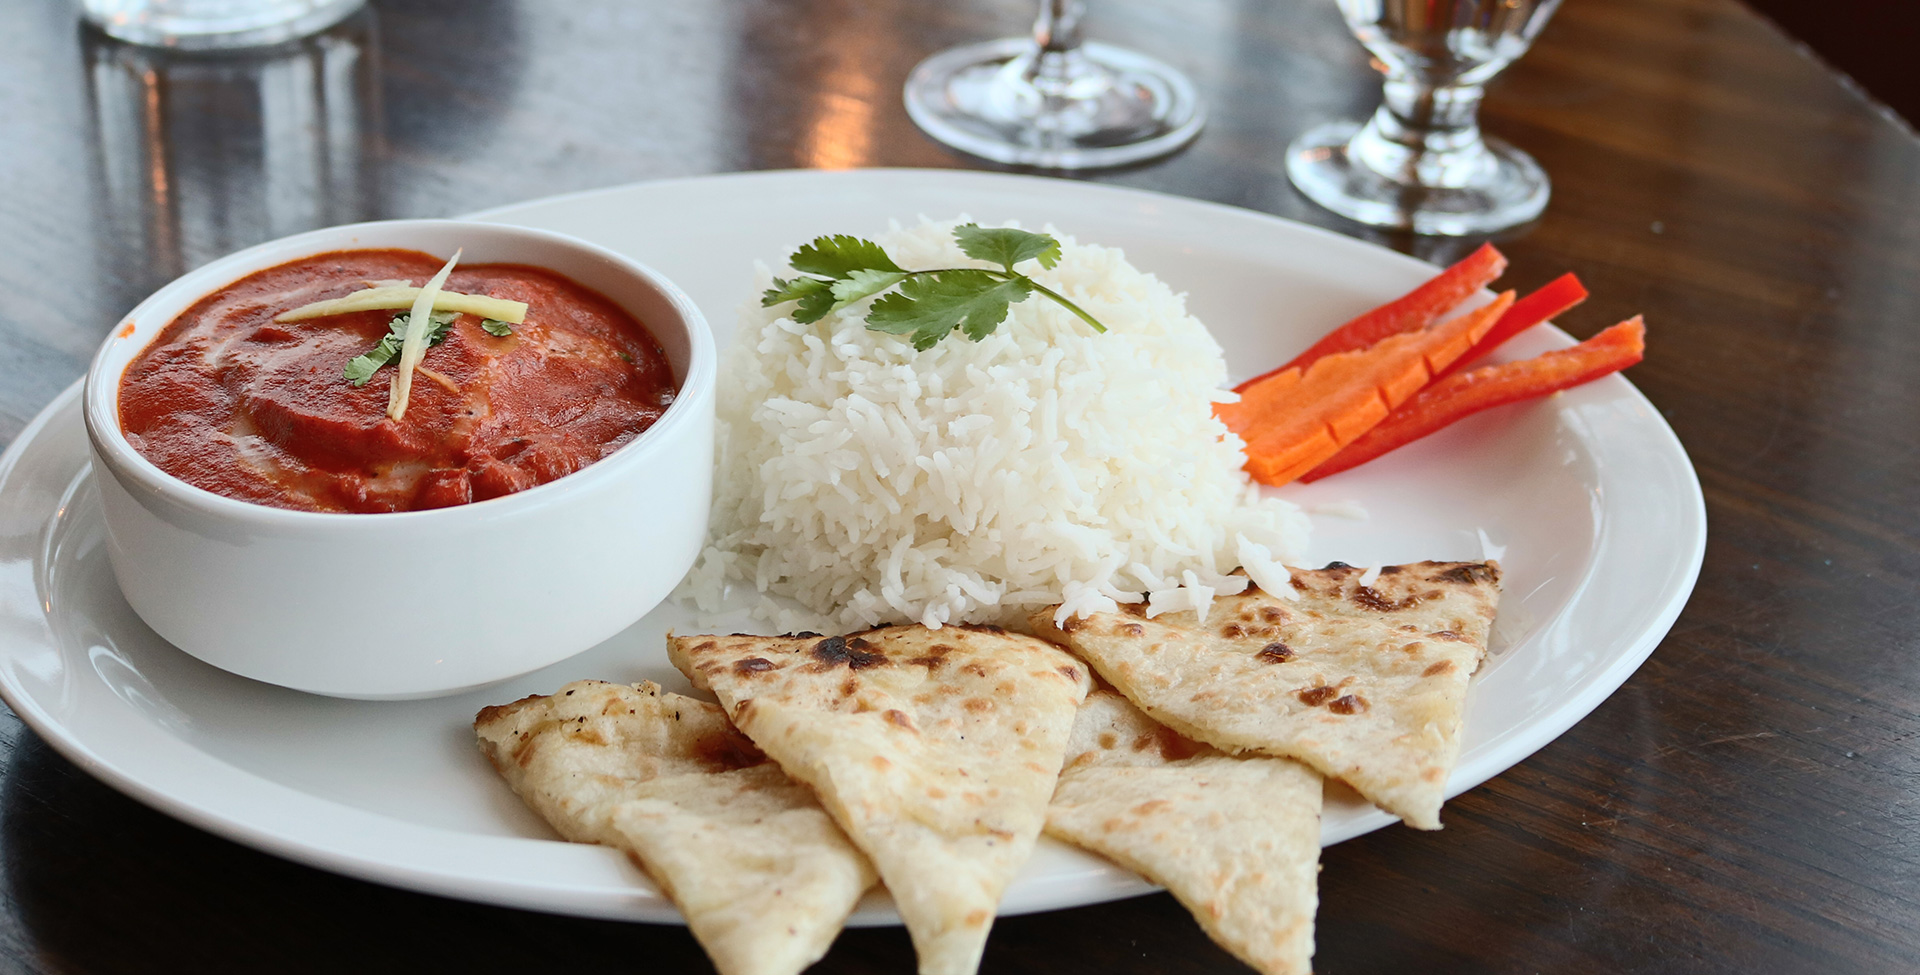 A round white plate serves a round container of red dipping sauce, dosas, white rice topped with parsley and carrots and red pepper garnishes at the Tandoor & Grill restaurant at Stanford Fernie Resort.